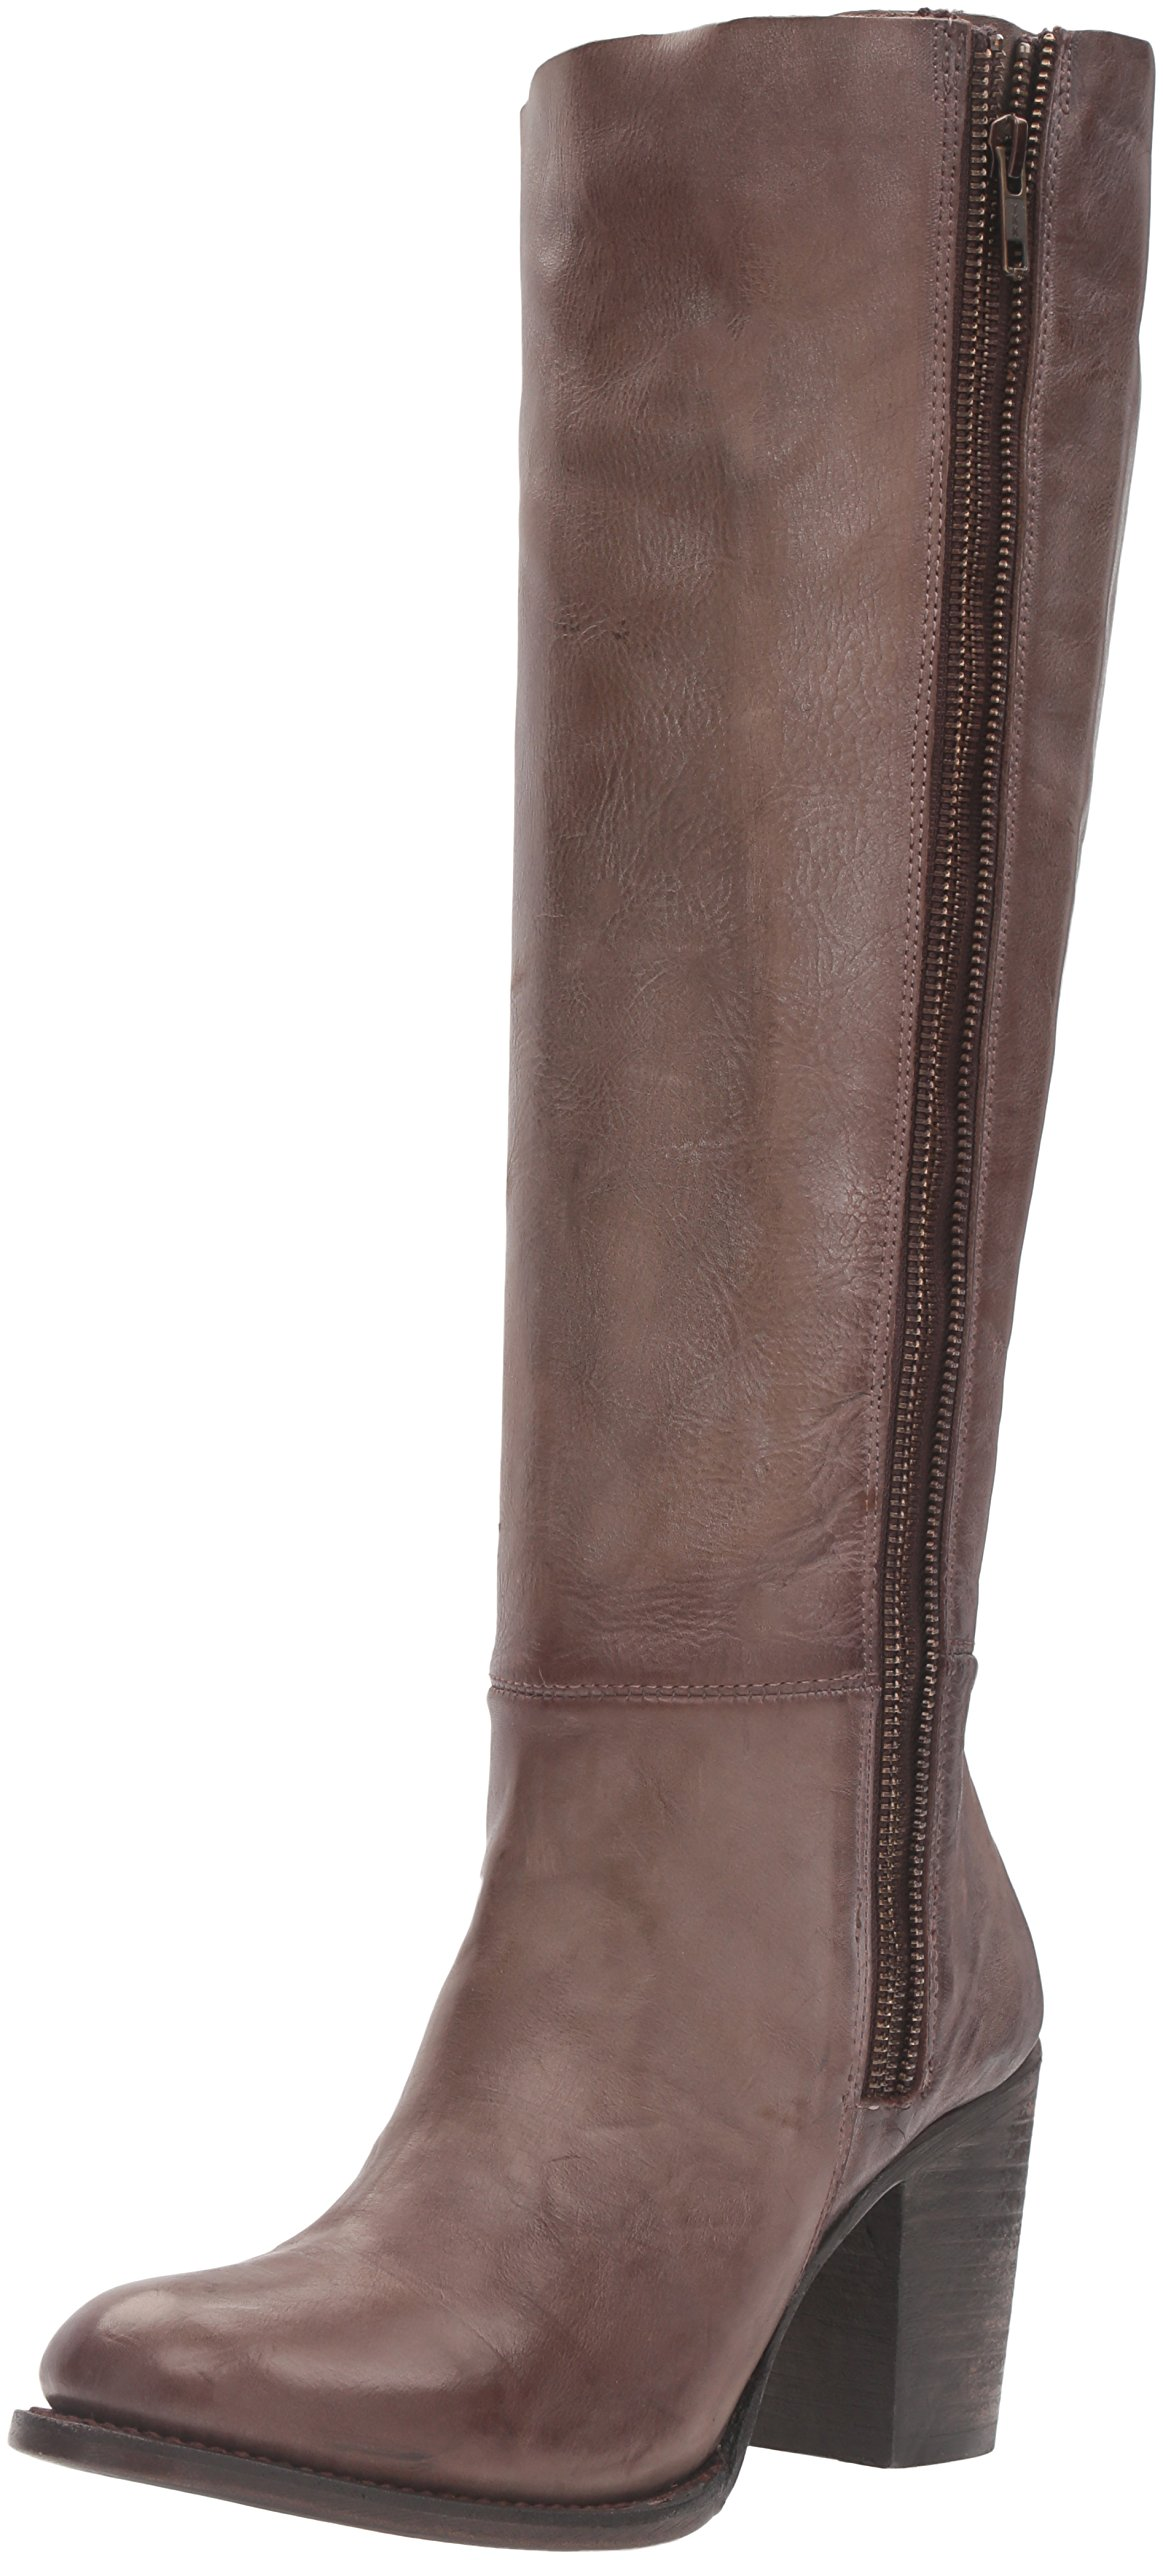 Freebird Women's Beau Riding Boot, Stone, 7 M US by Freebird by Steven